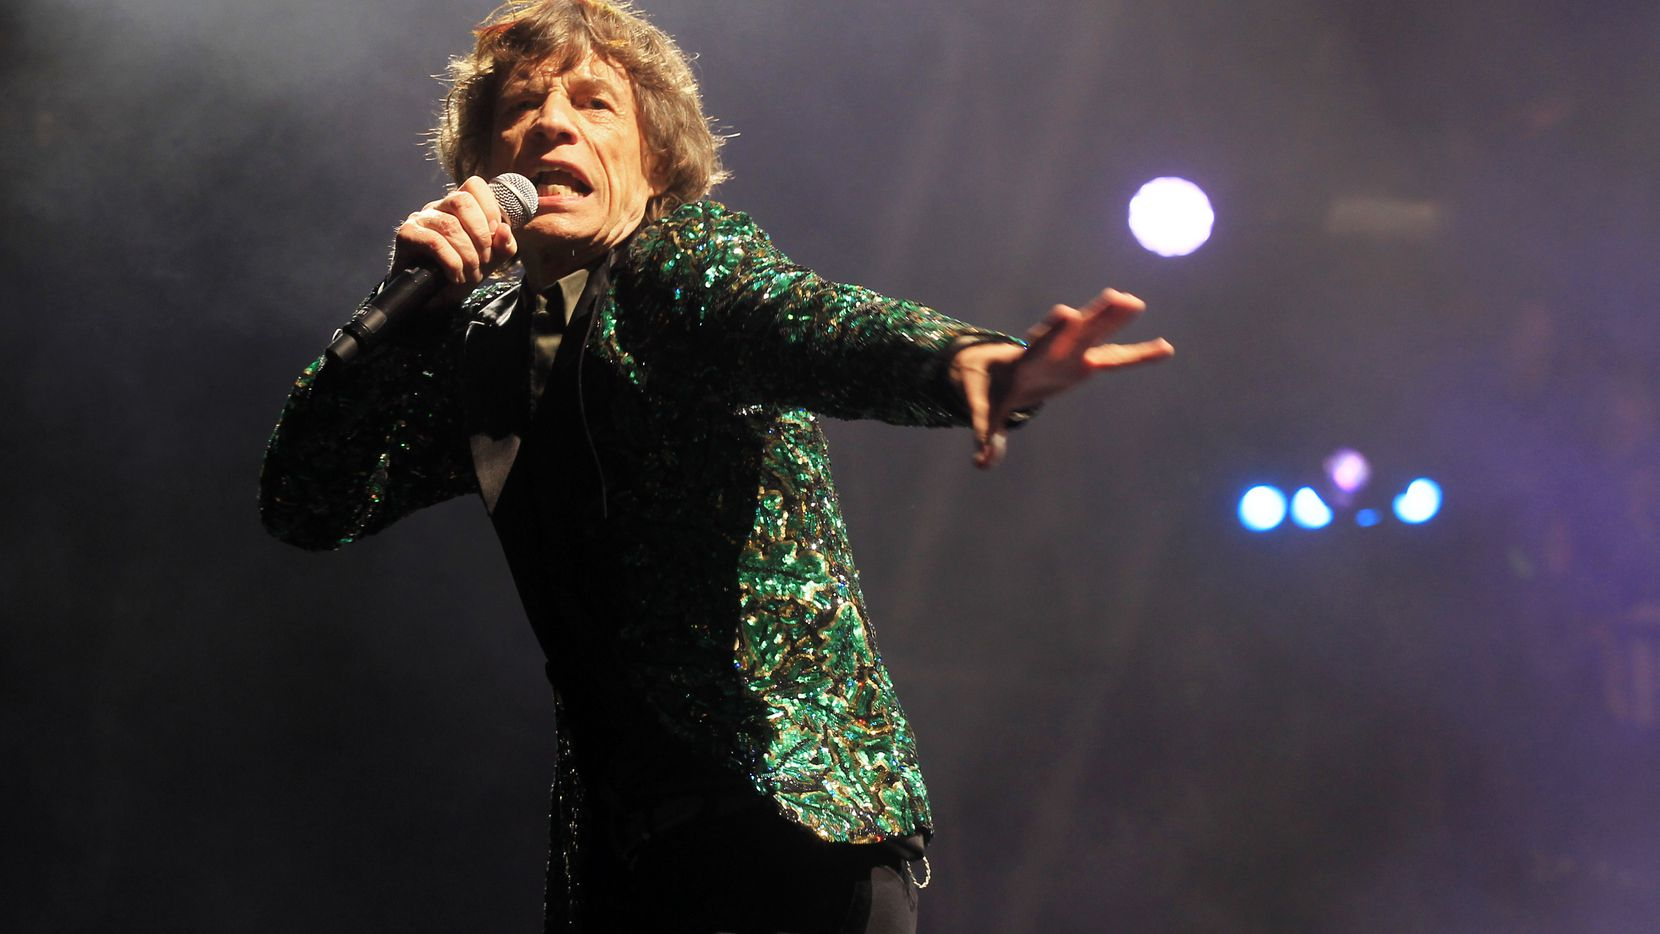 """Mick Jagger performs in 2013. The Rolling Stones will appear at the Cotton Bowl on Nov. 2, 2021, as part of their revised """"No Filter"""" tour, which was stricken from the calendar in 2020 because of the spread of COVID-19."""